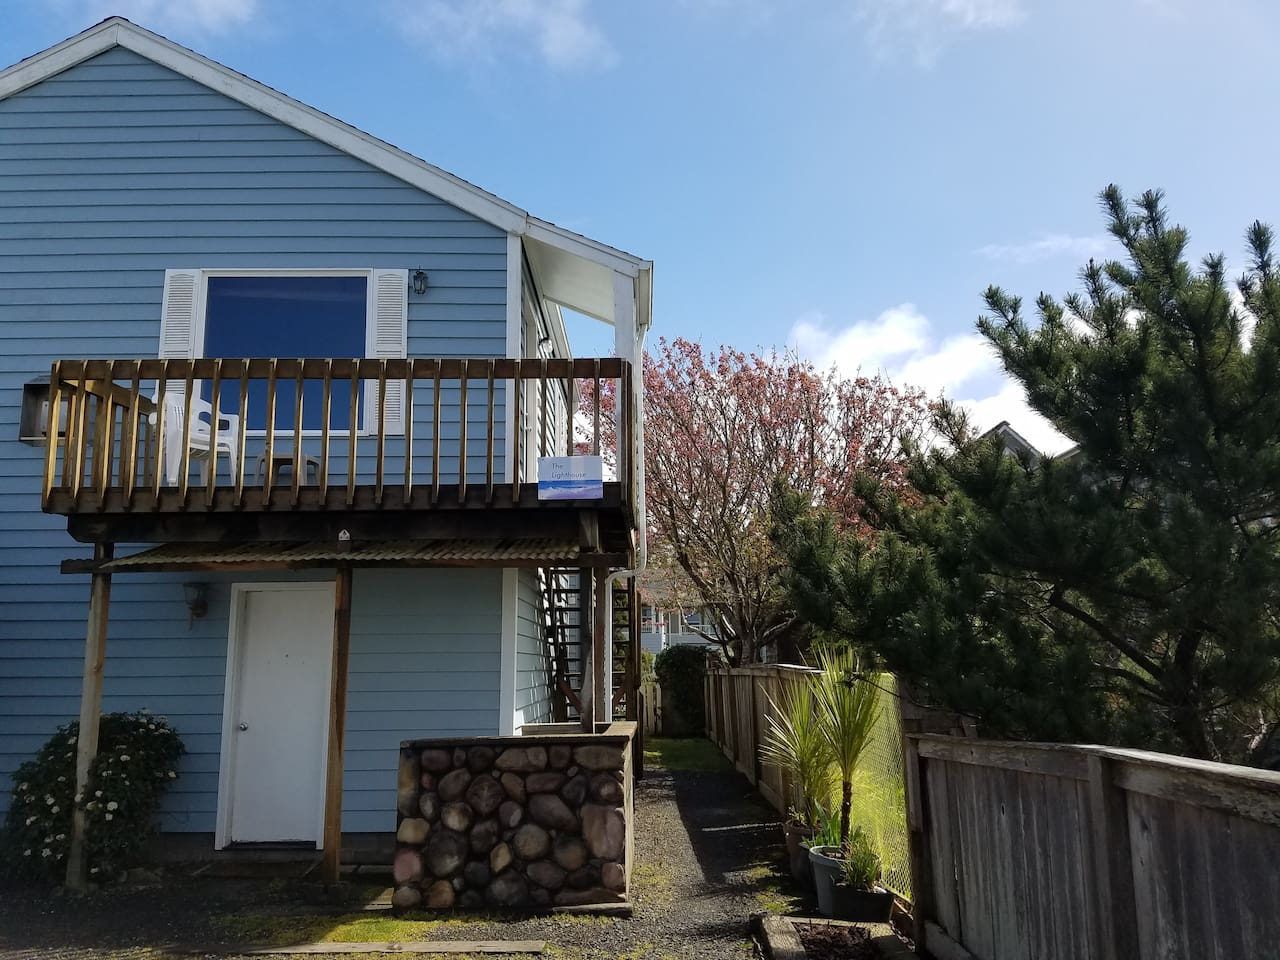 Studio is upstairs and this is the deck and window with Ocean View.exterior